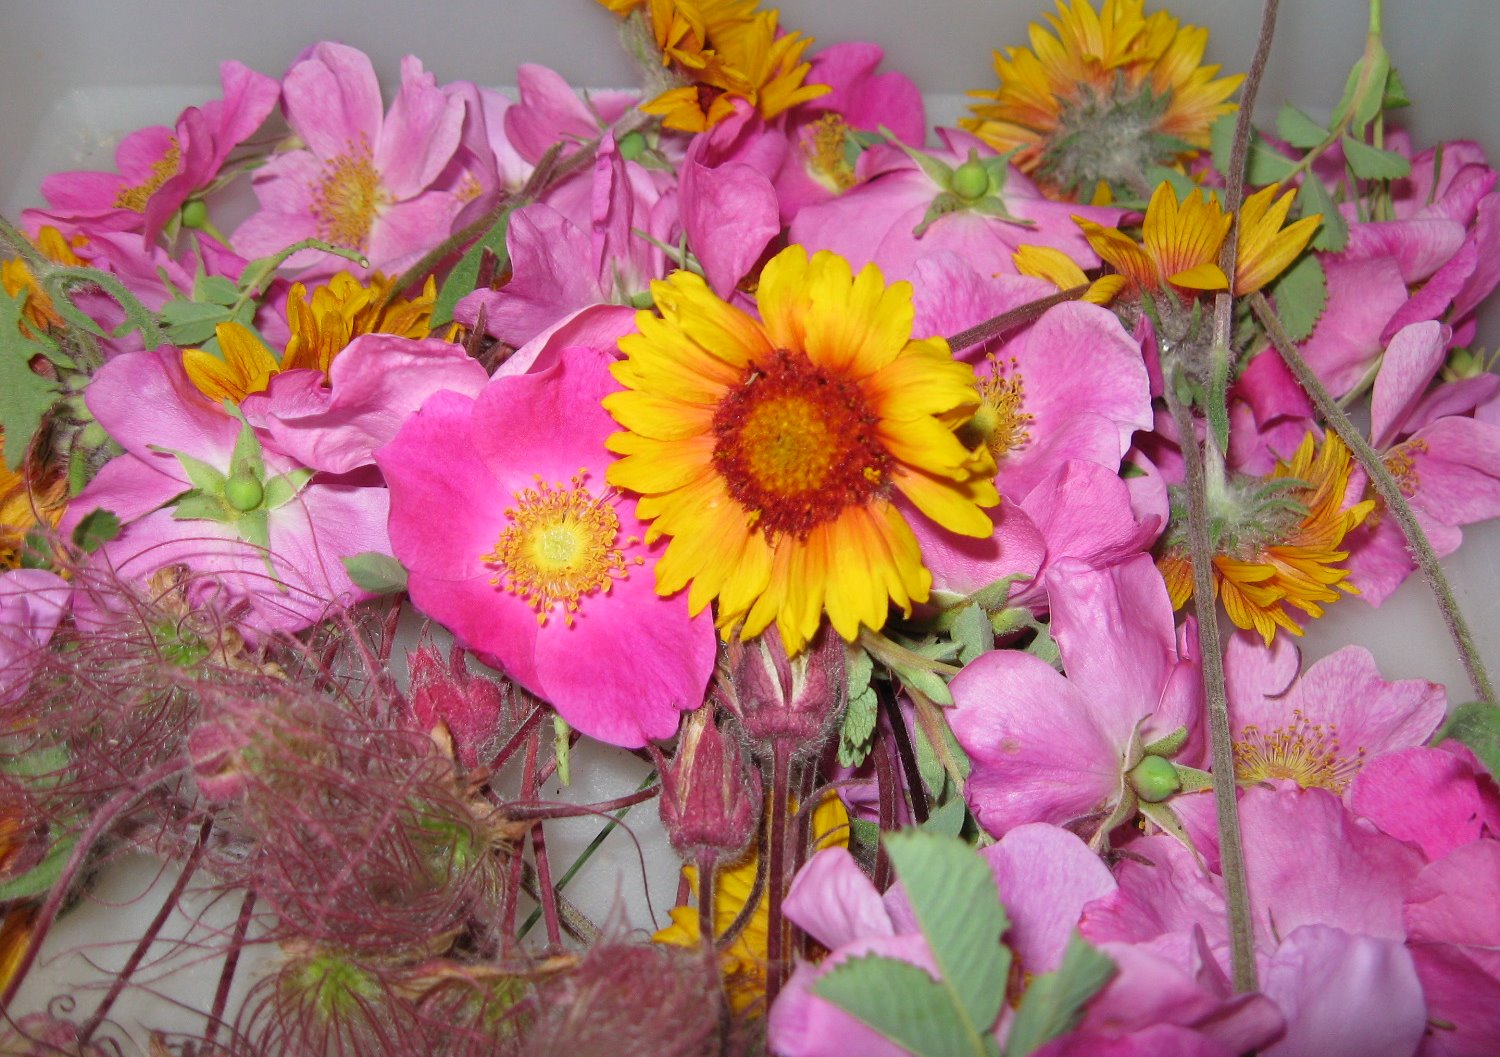 amyspressedflowers Piles of Posies to Press